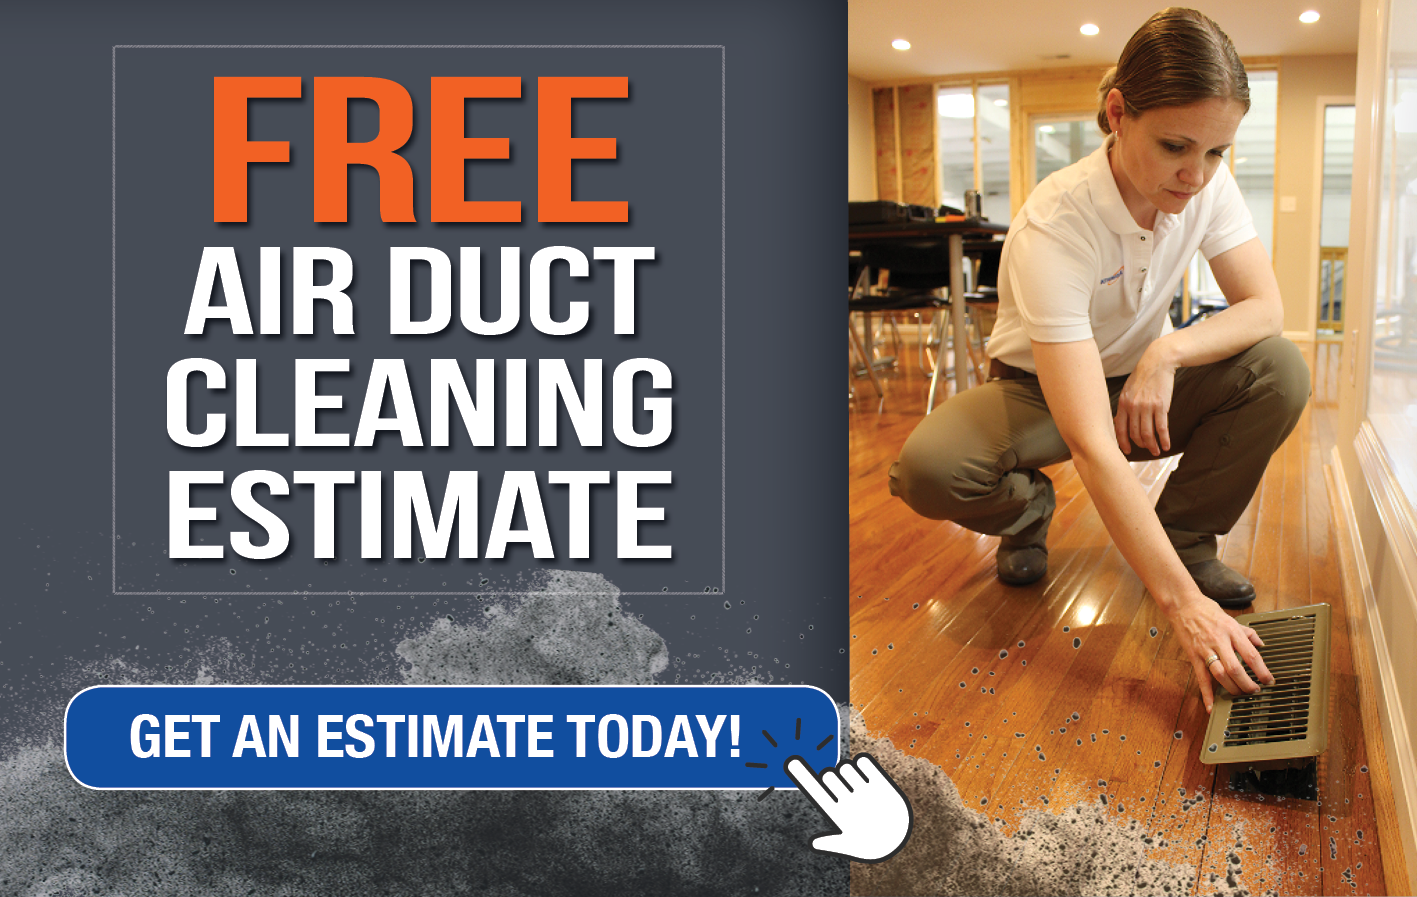 Free Air Duct Cleaning Estimate